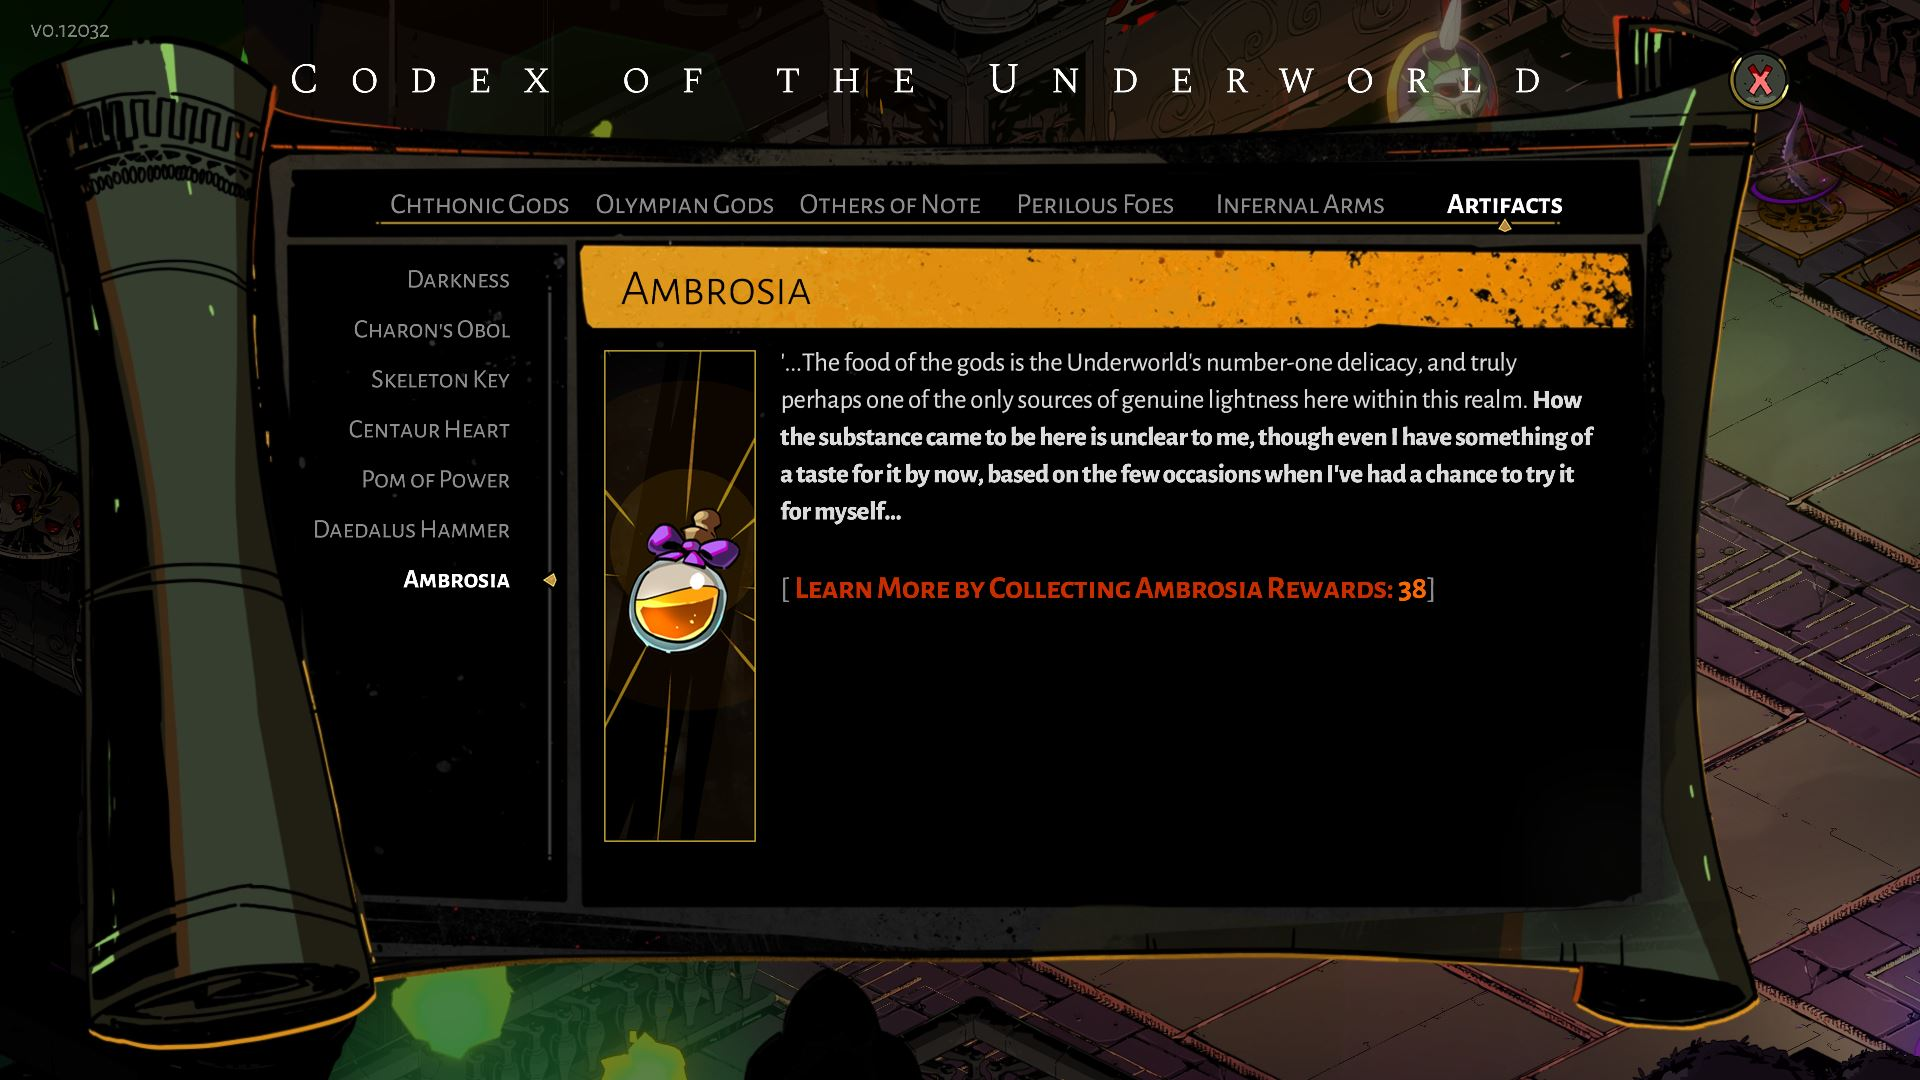 Ambrosia item in Hades